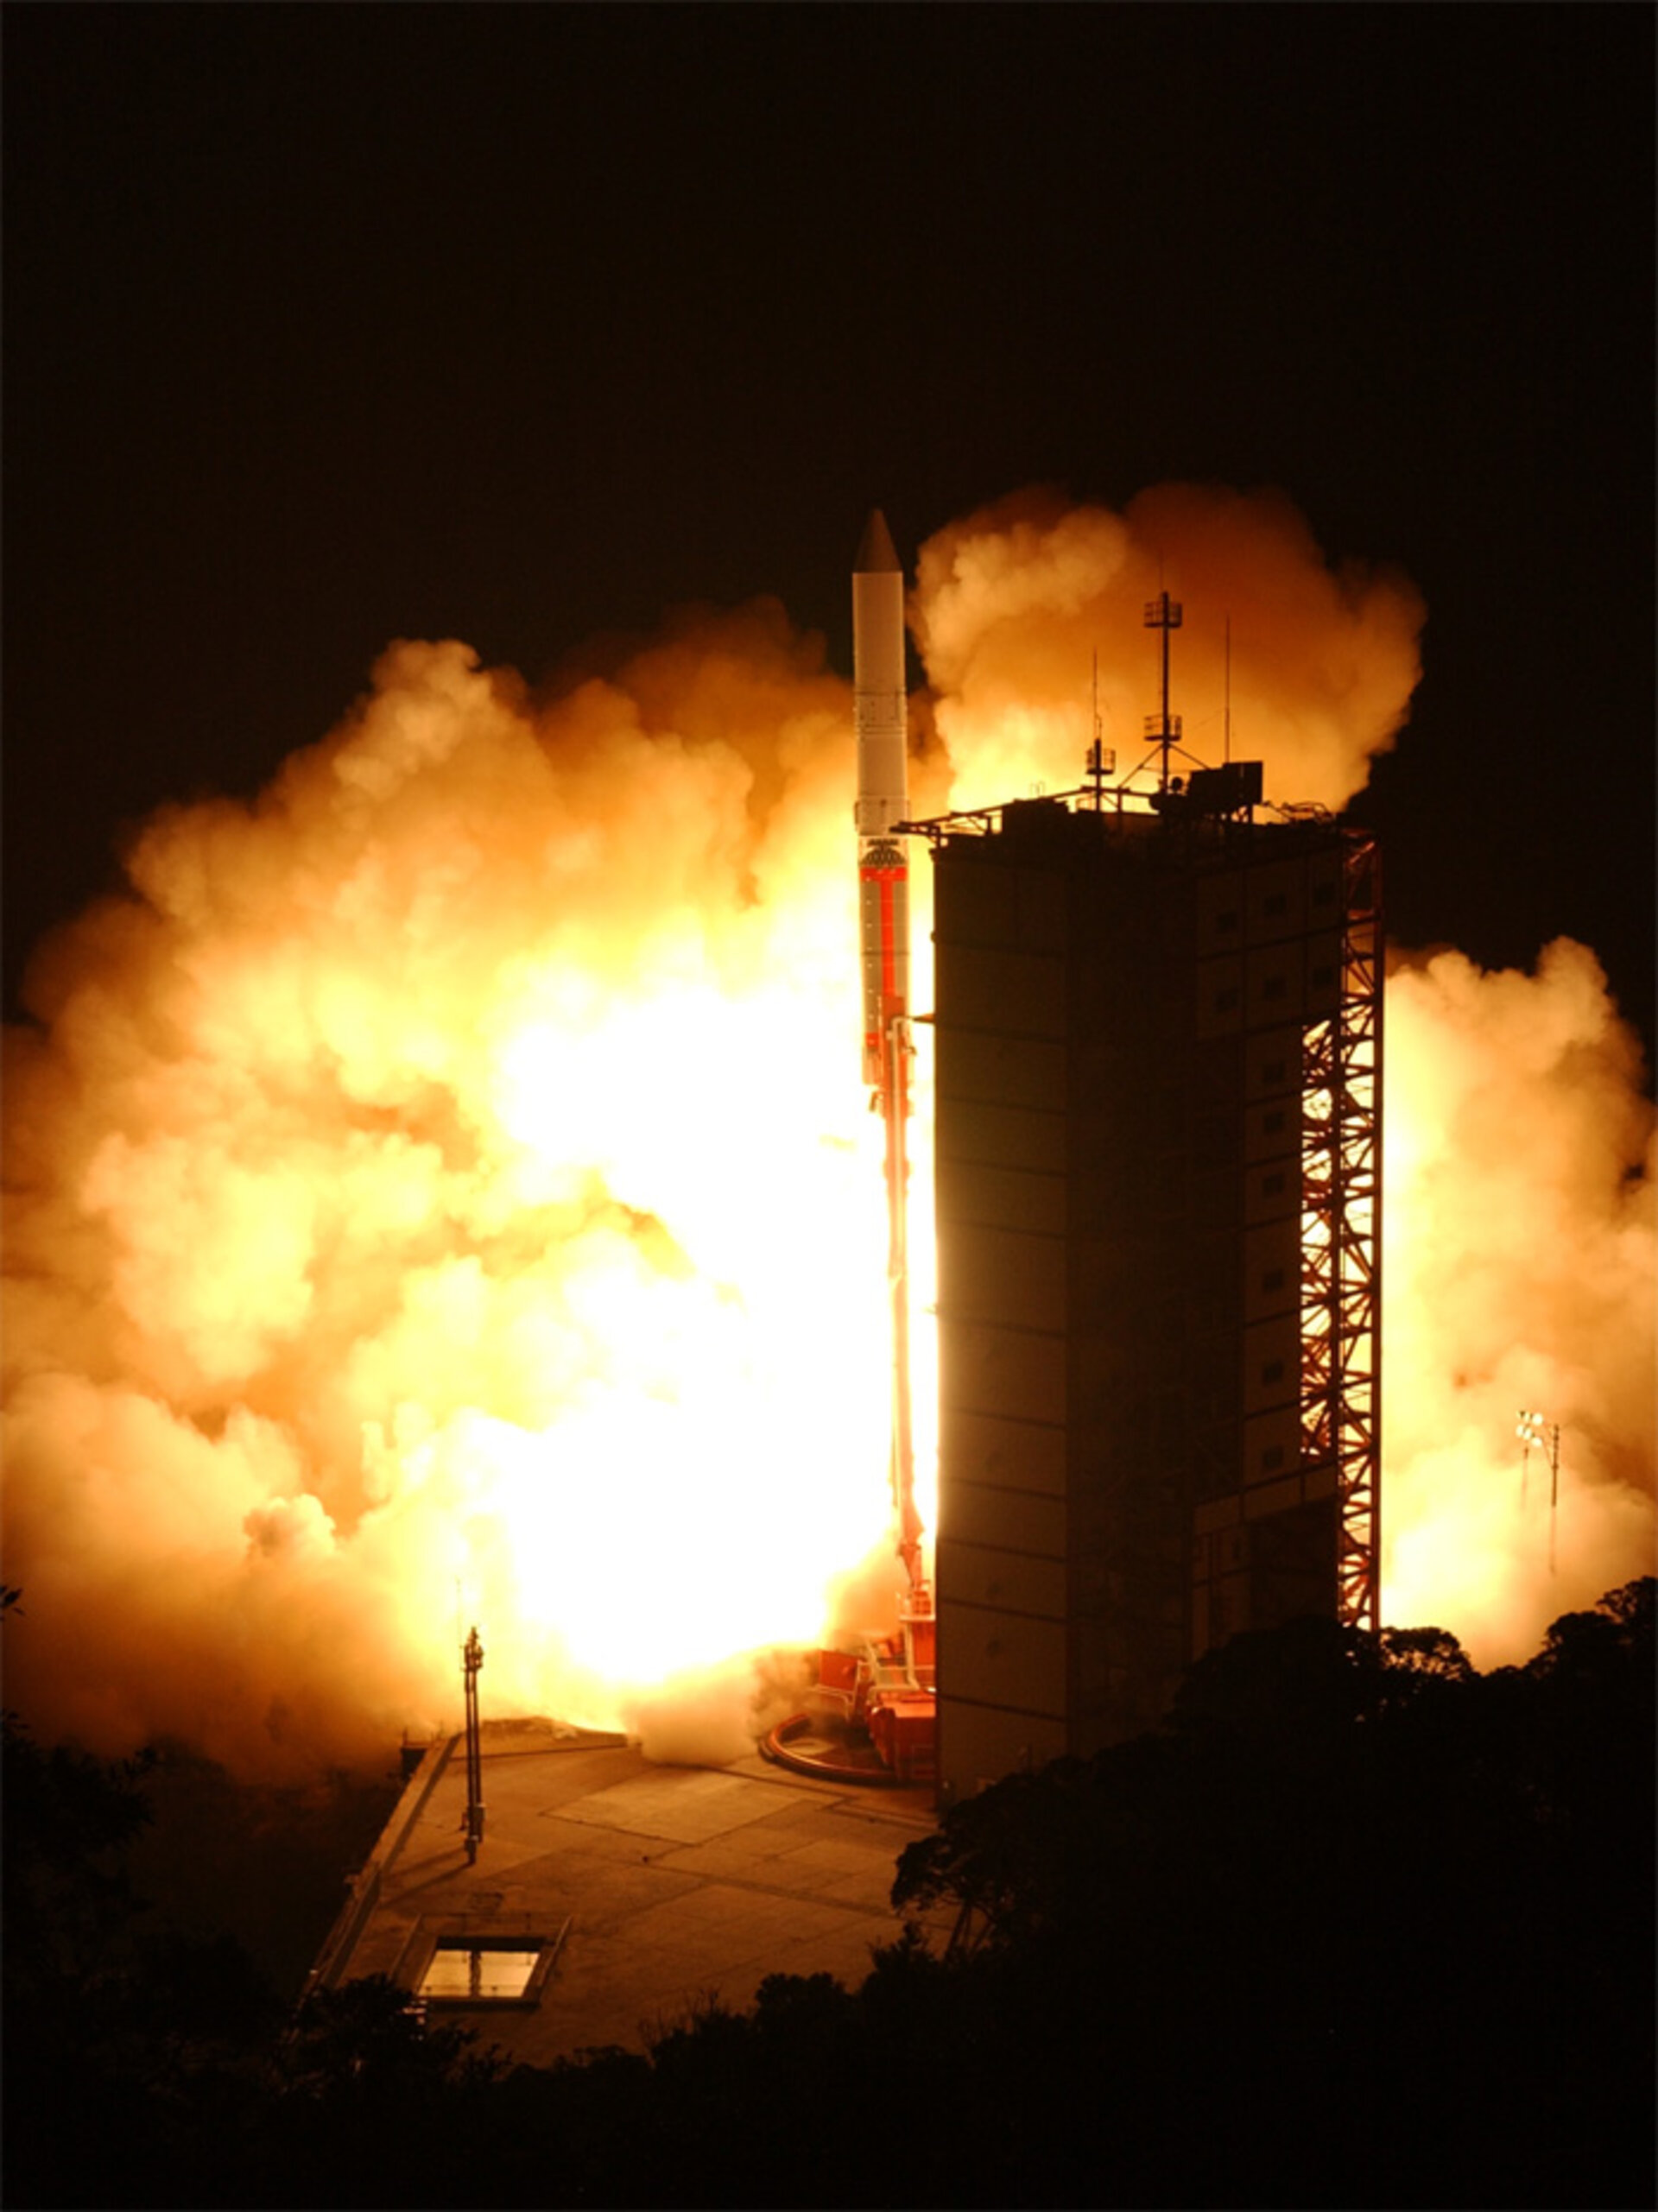 ASTRO-F, now called AKARI, is successfully launched